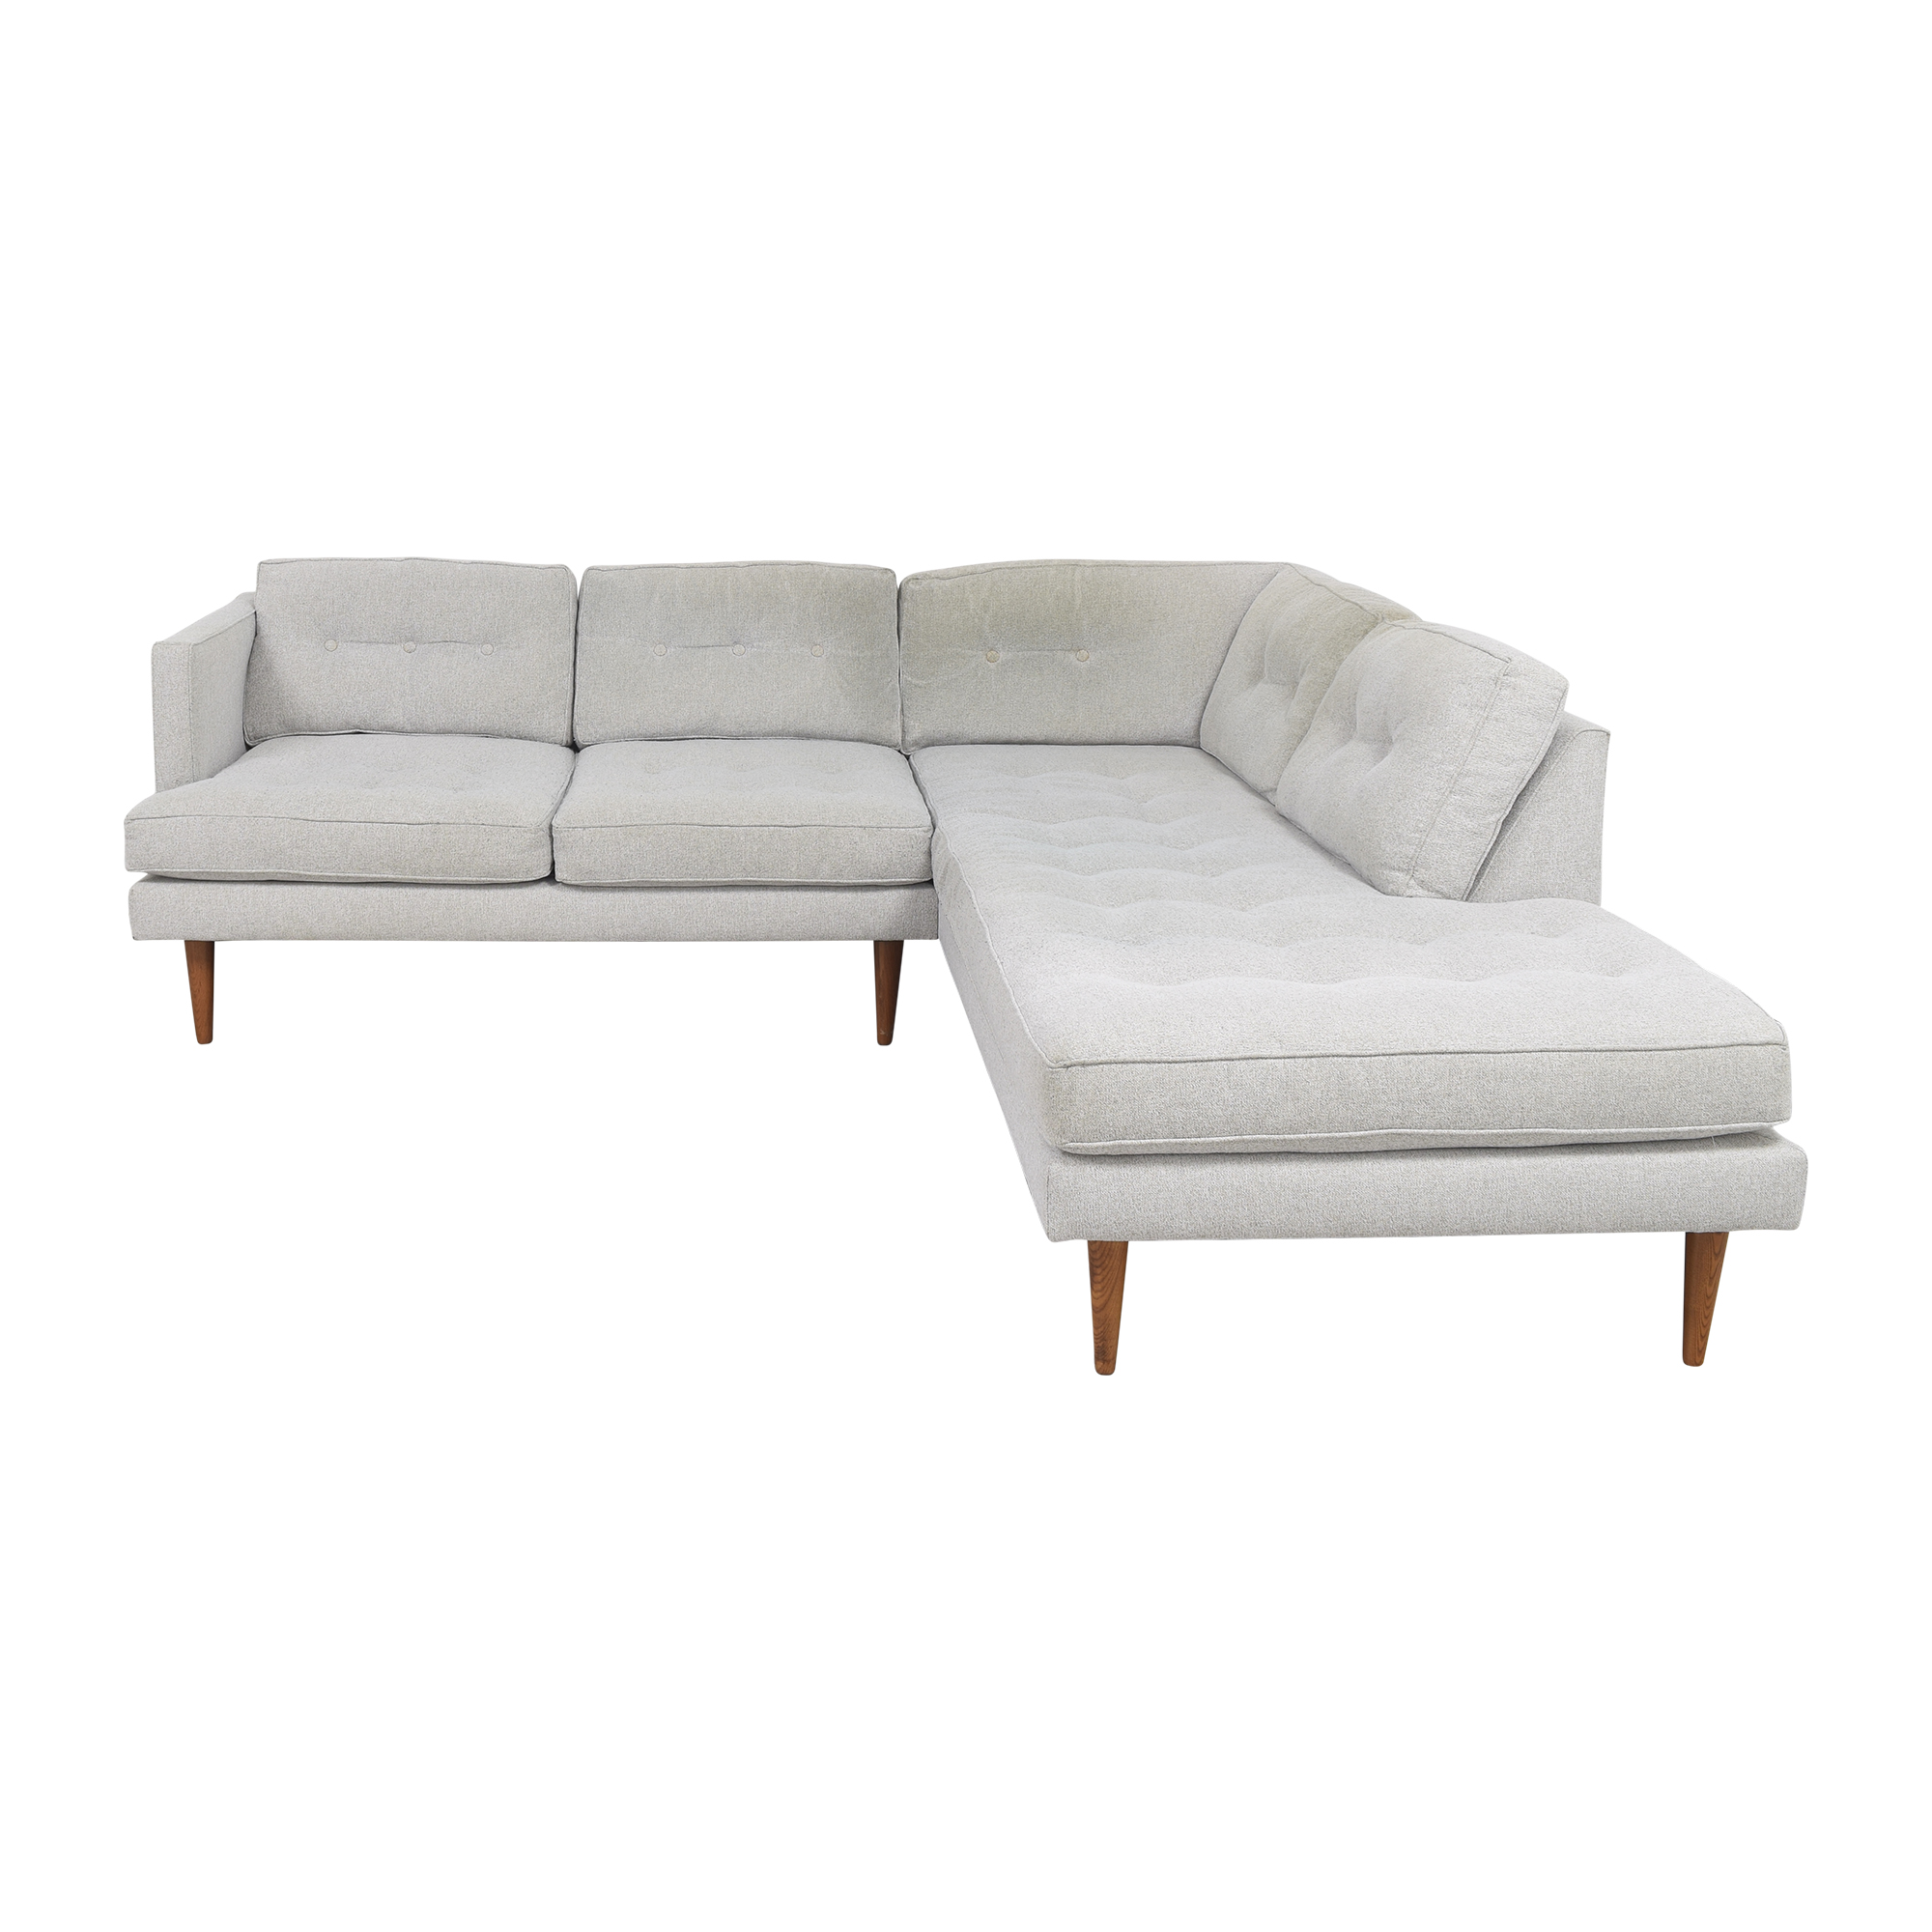 West Elm West Elm Terminal Chaise Sectional Sofa dimensions